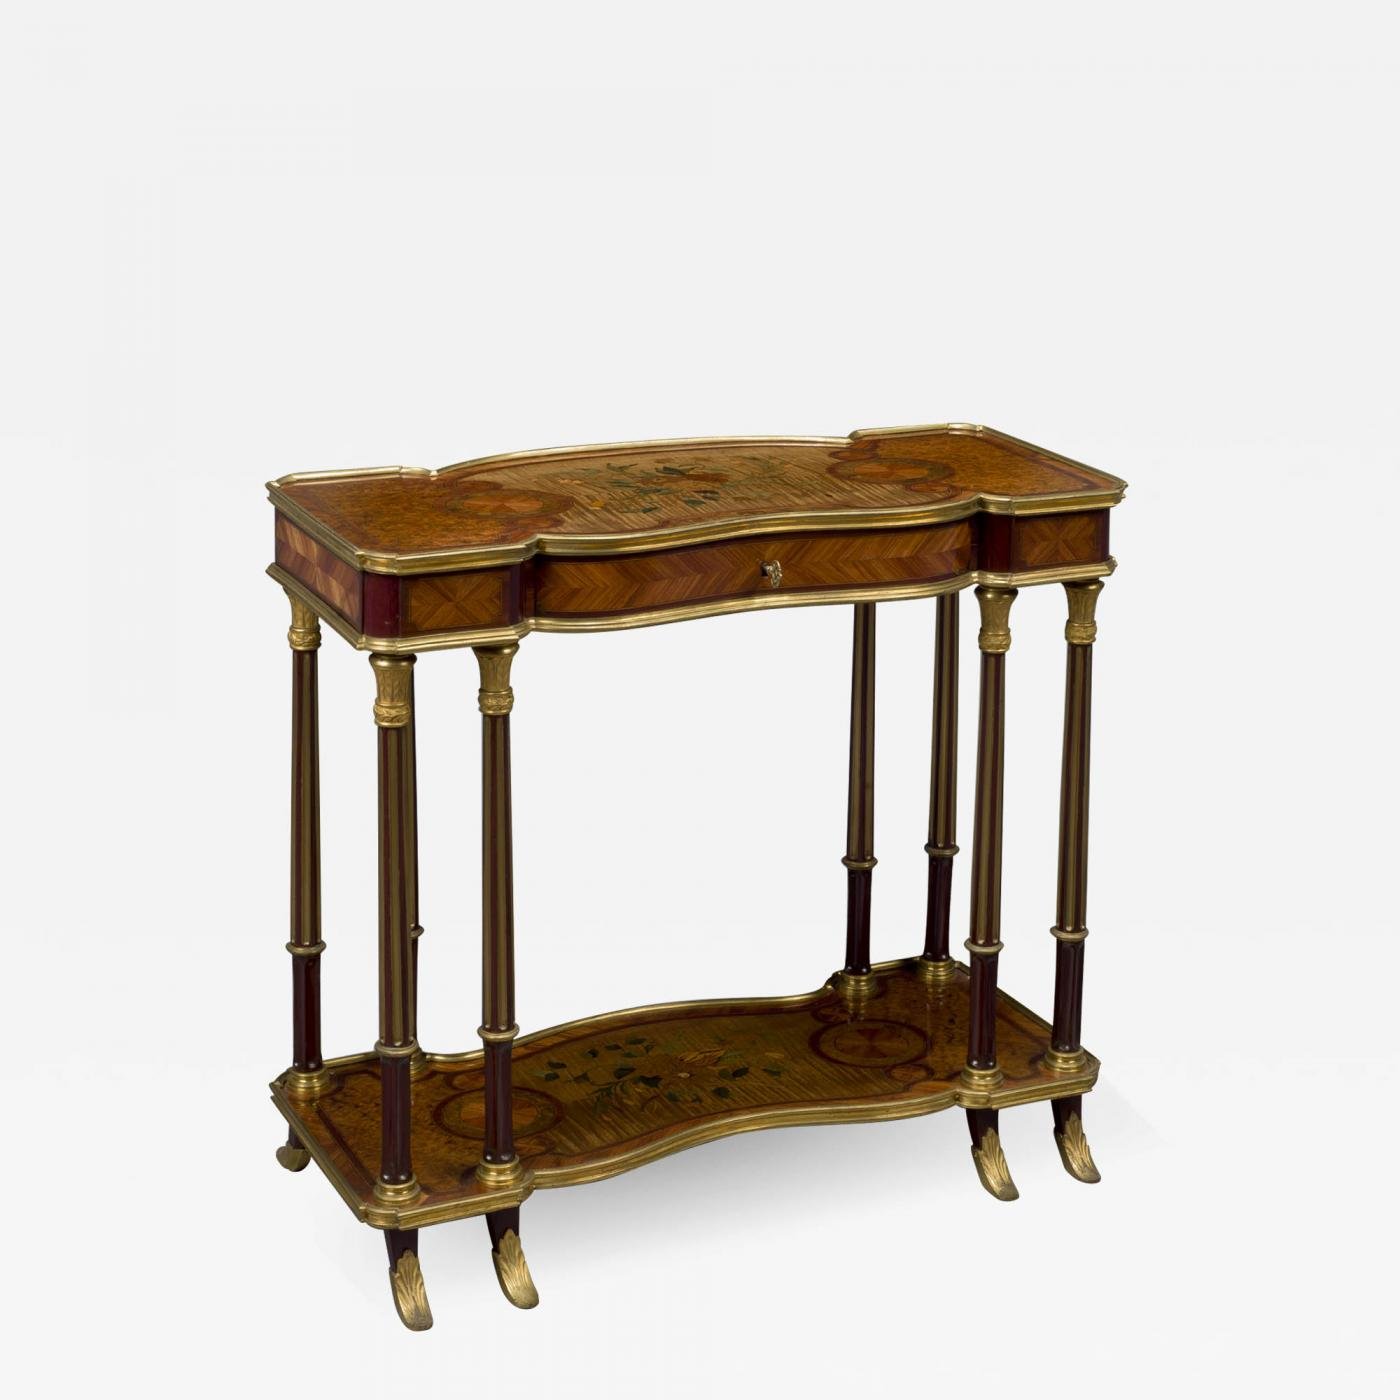 A Transitional Style Low Side Table